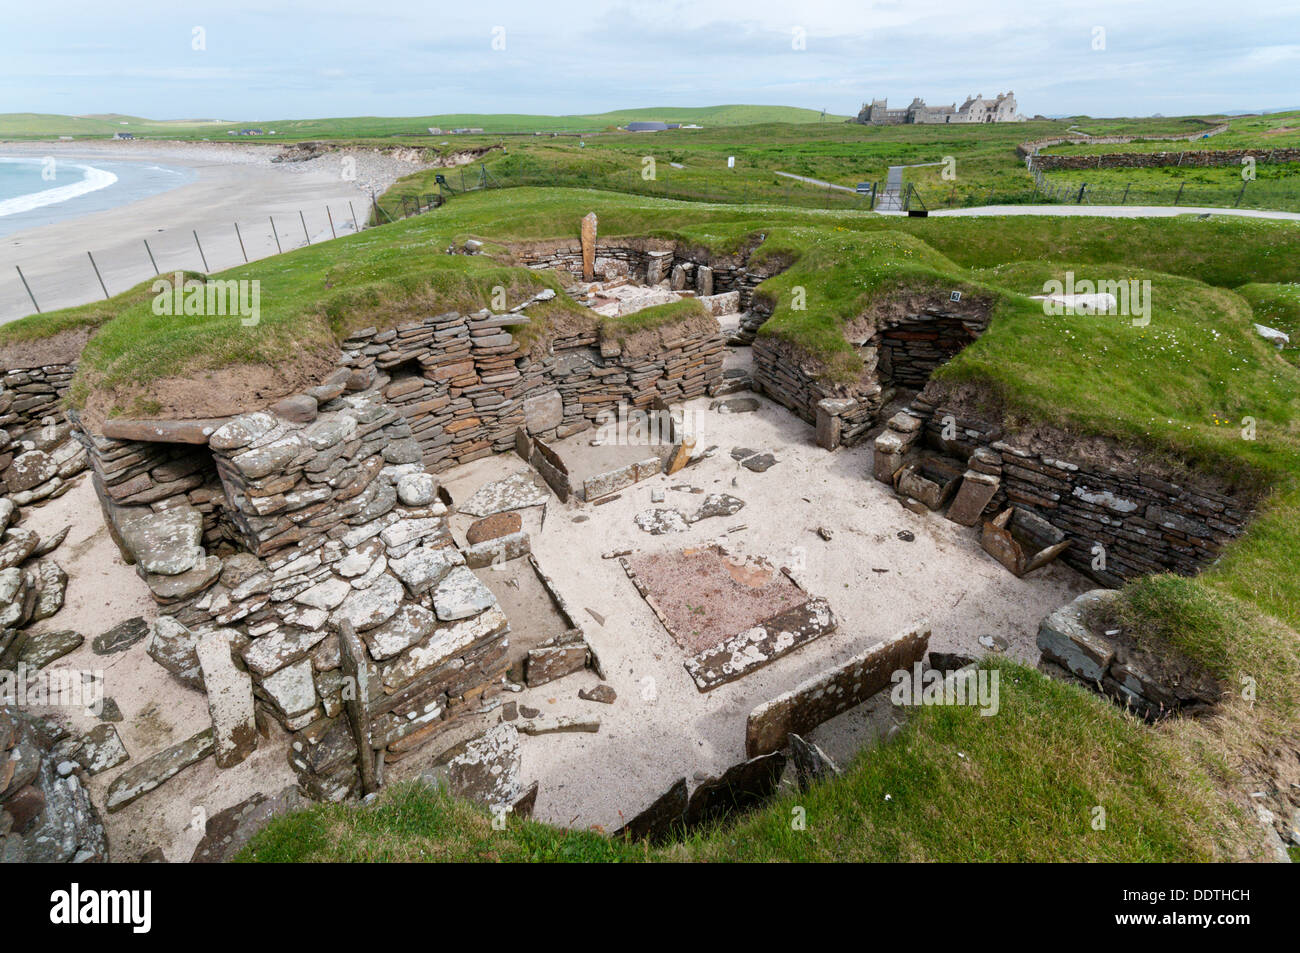 House 5 at Skara Brae Neolithic Village on Mainland Orkney with Skaill Bay and Skaill House in the background. Stock Photo